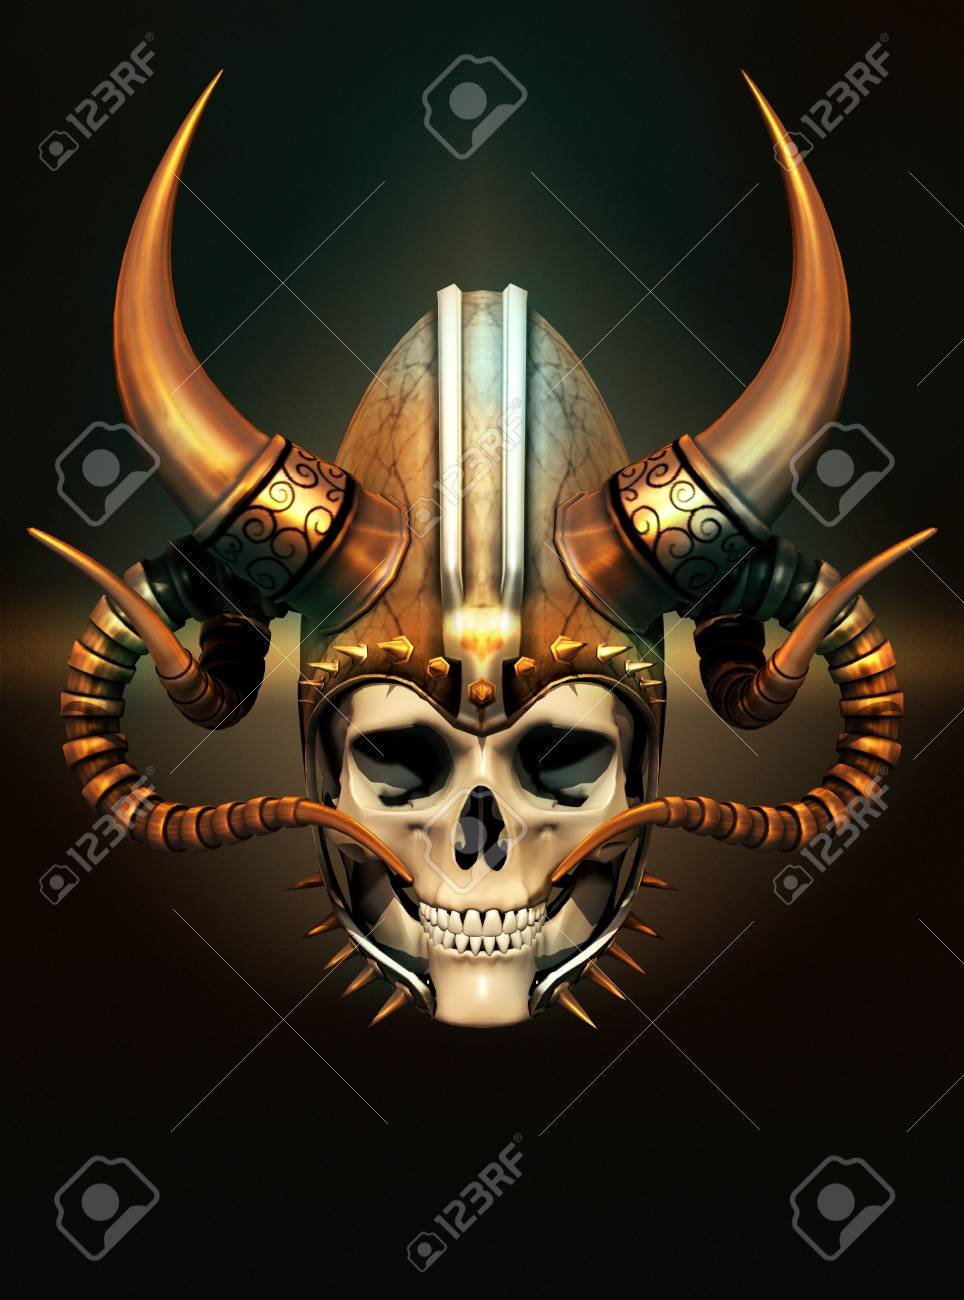 3d computer graphics of a skull with a helmet with horns